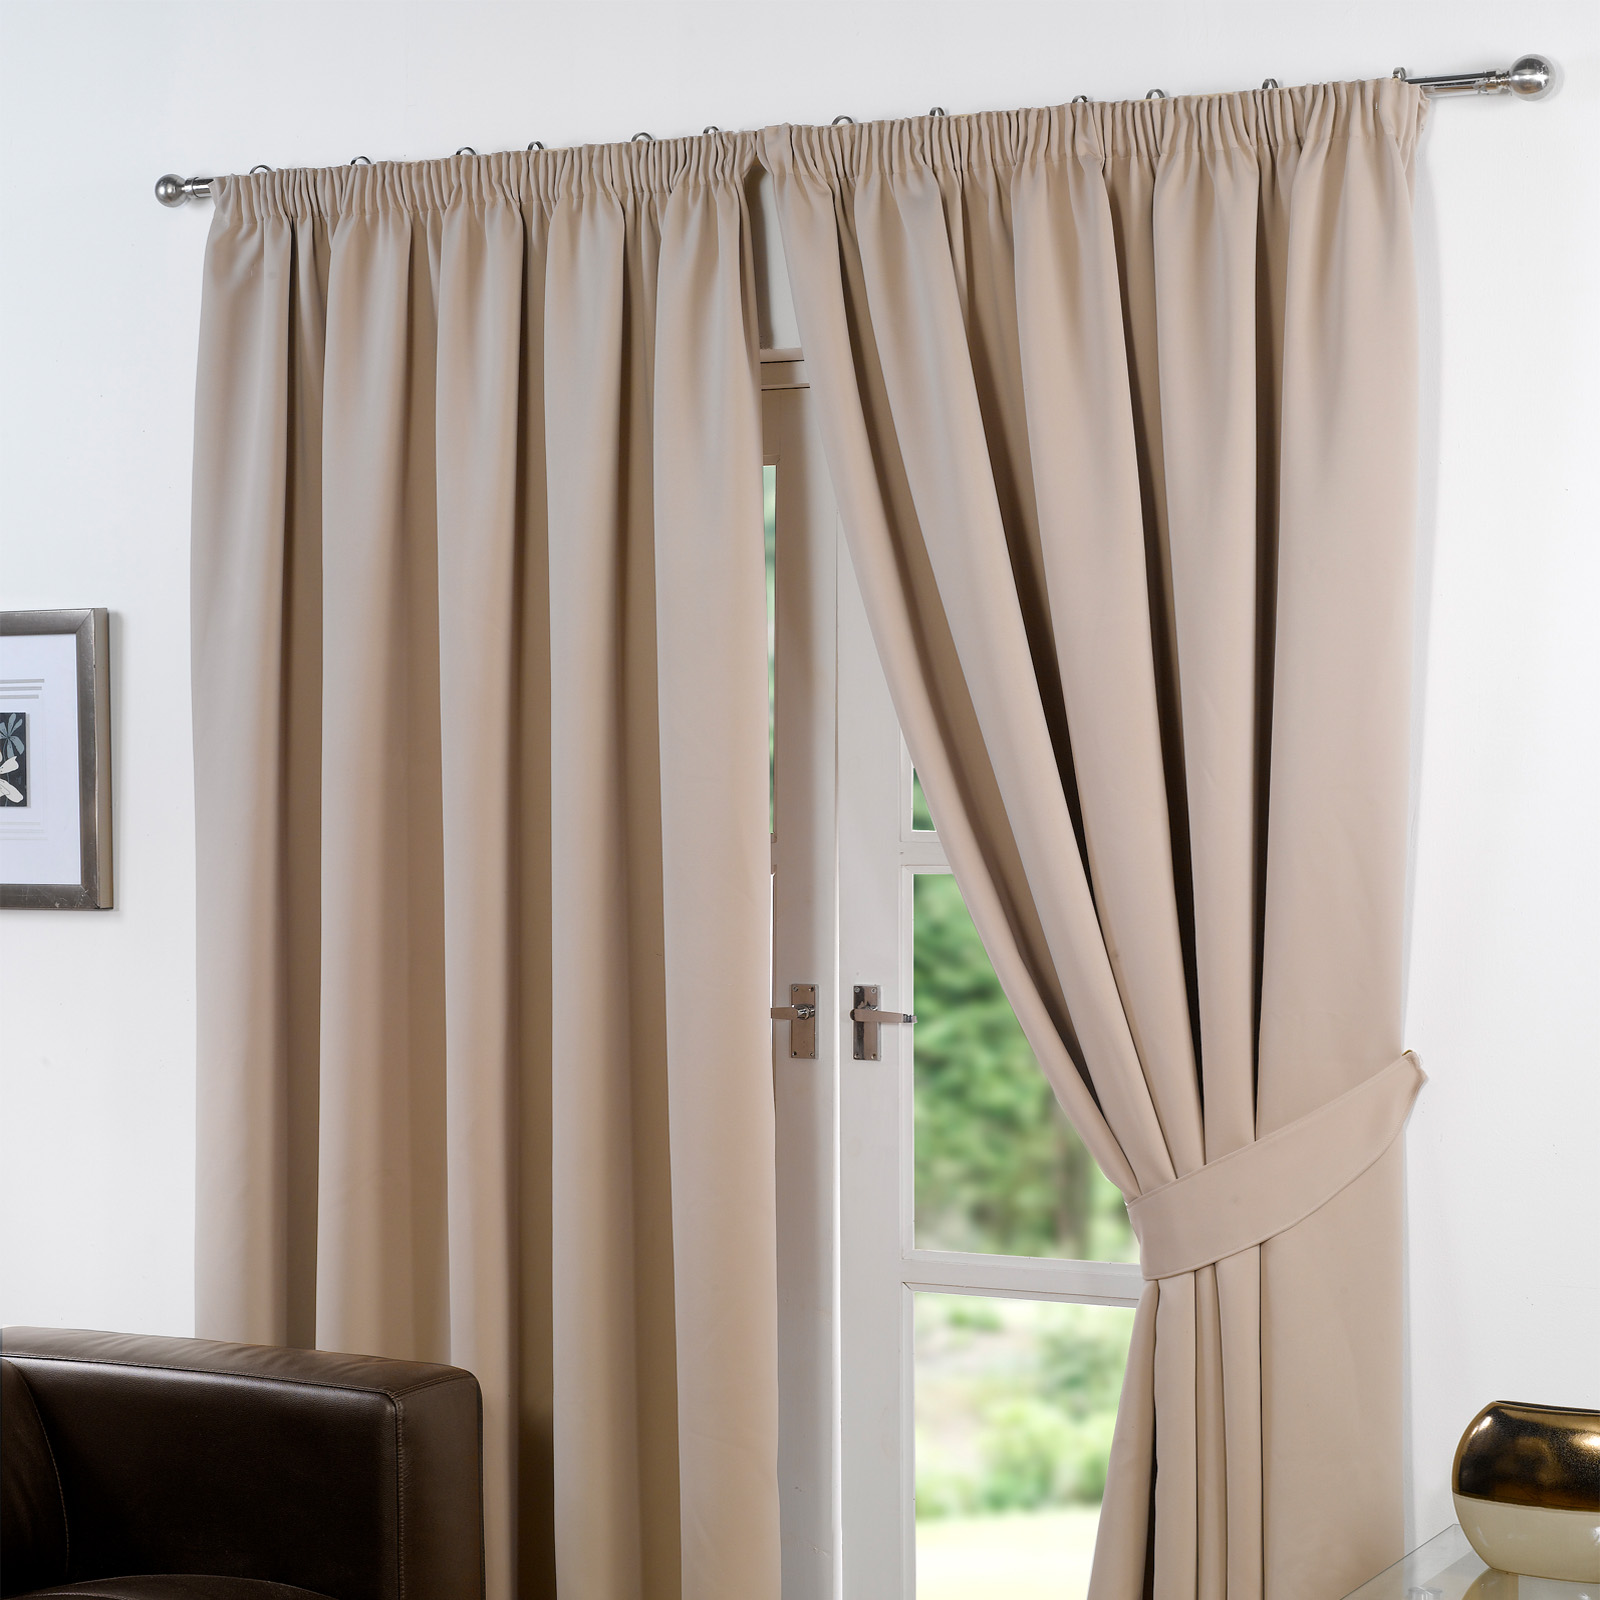 Ready Made Thermal Curtains Details About Dreamscene Pencil Pleat Blackout Curtains Pair Of Ready Made Thermal Tape Top